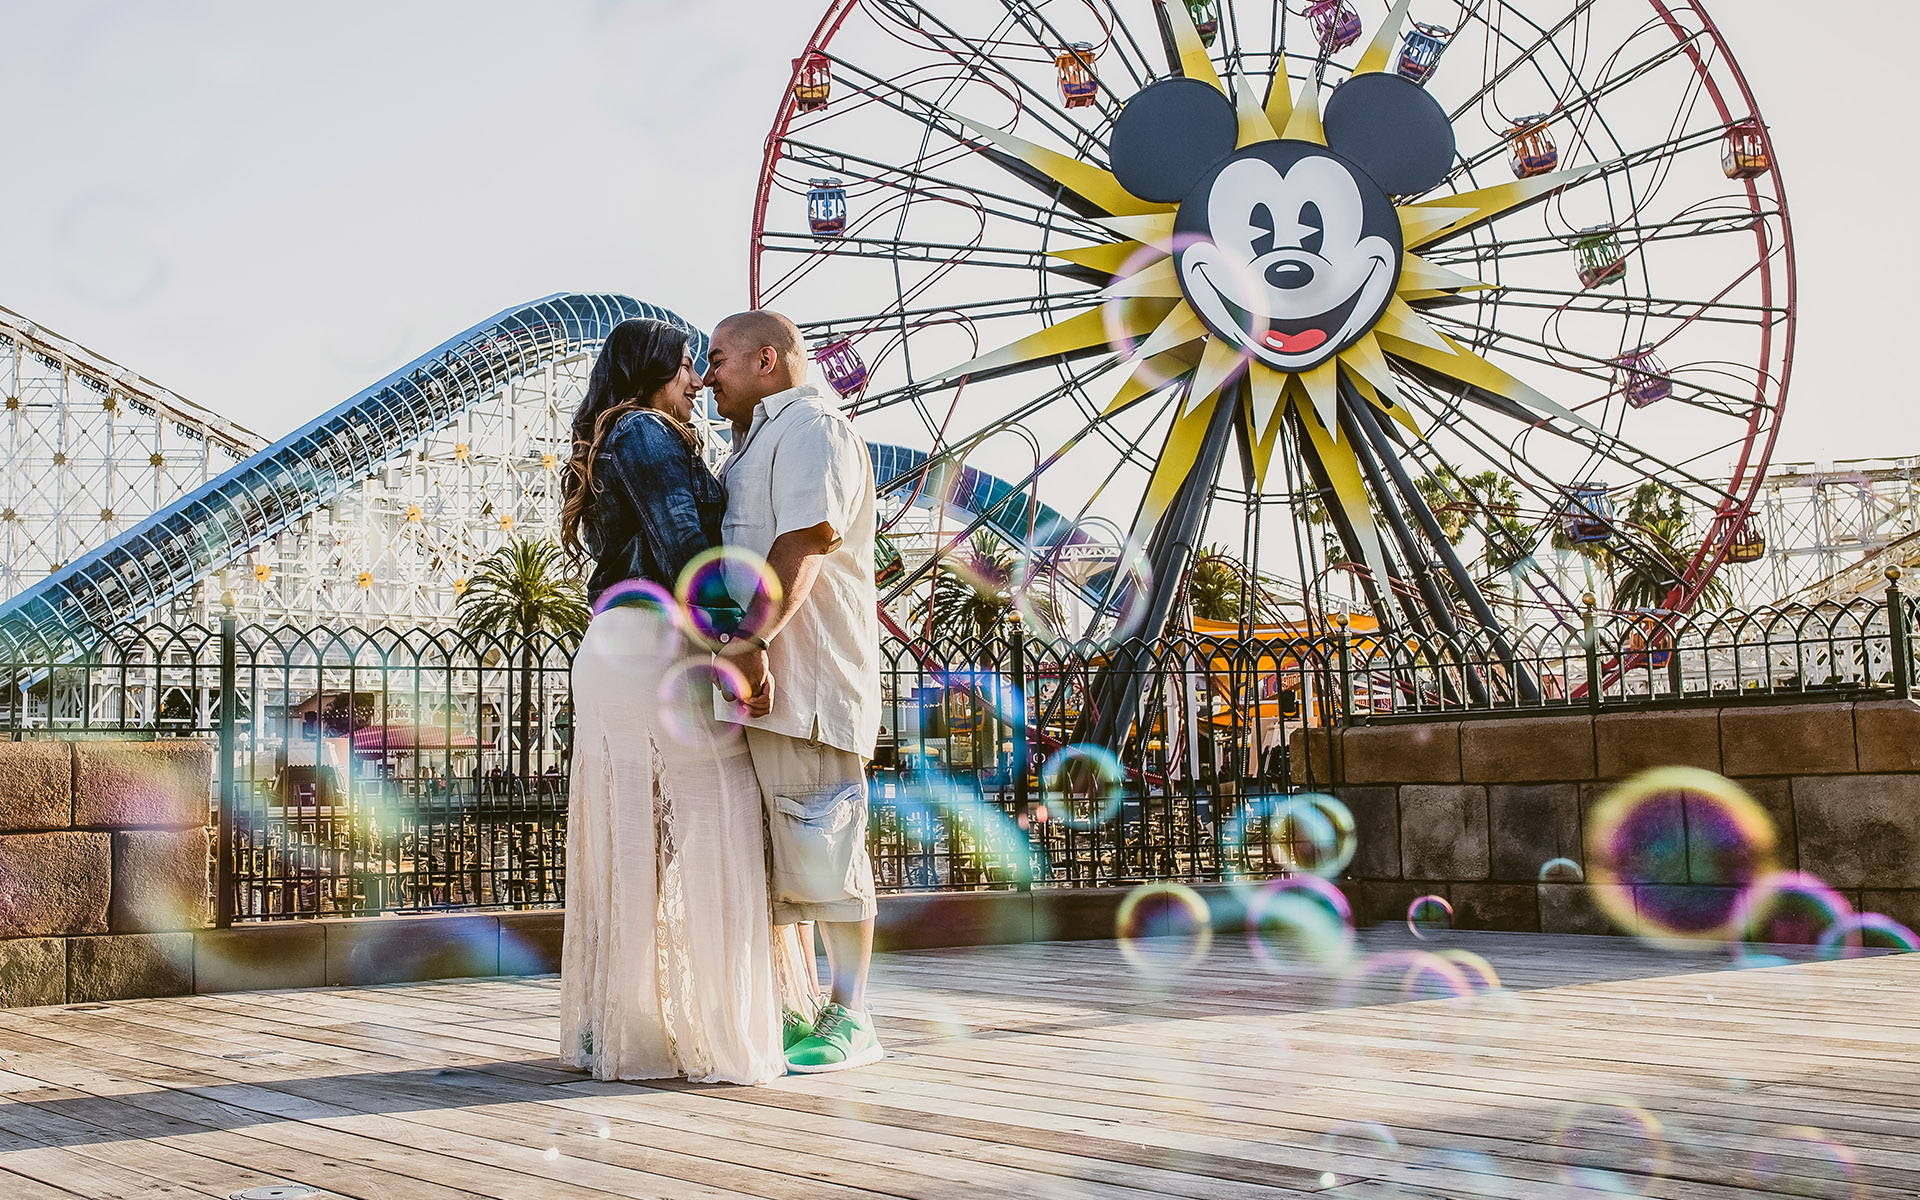 engagement at disneyland with bubbles california adventure mickey mouse ferris wheel